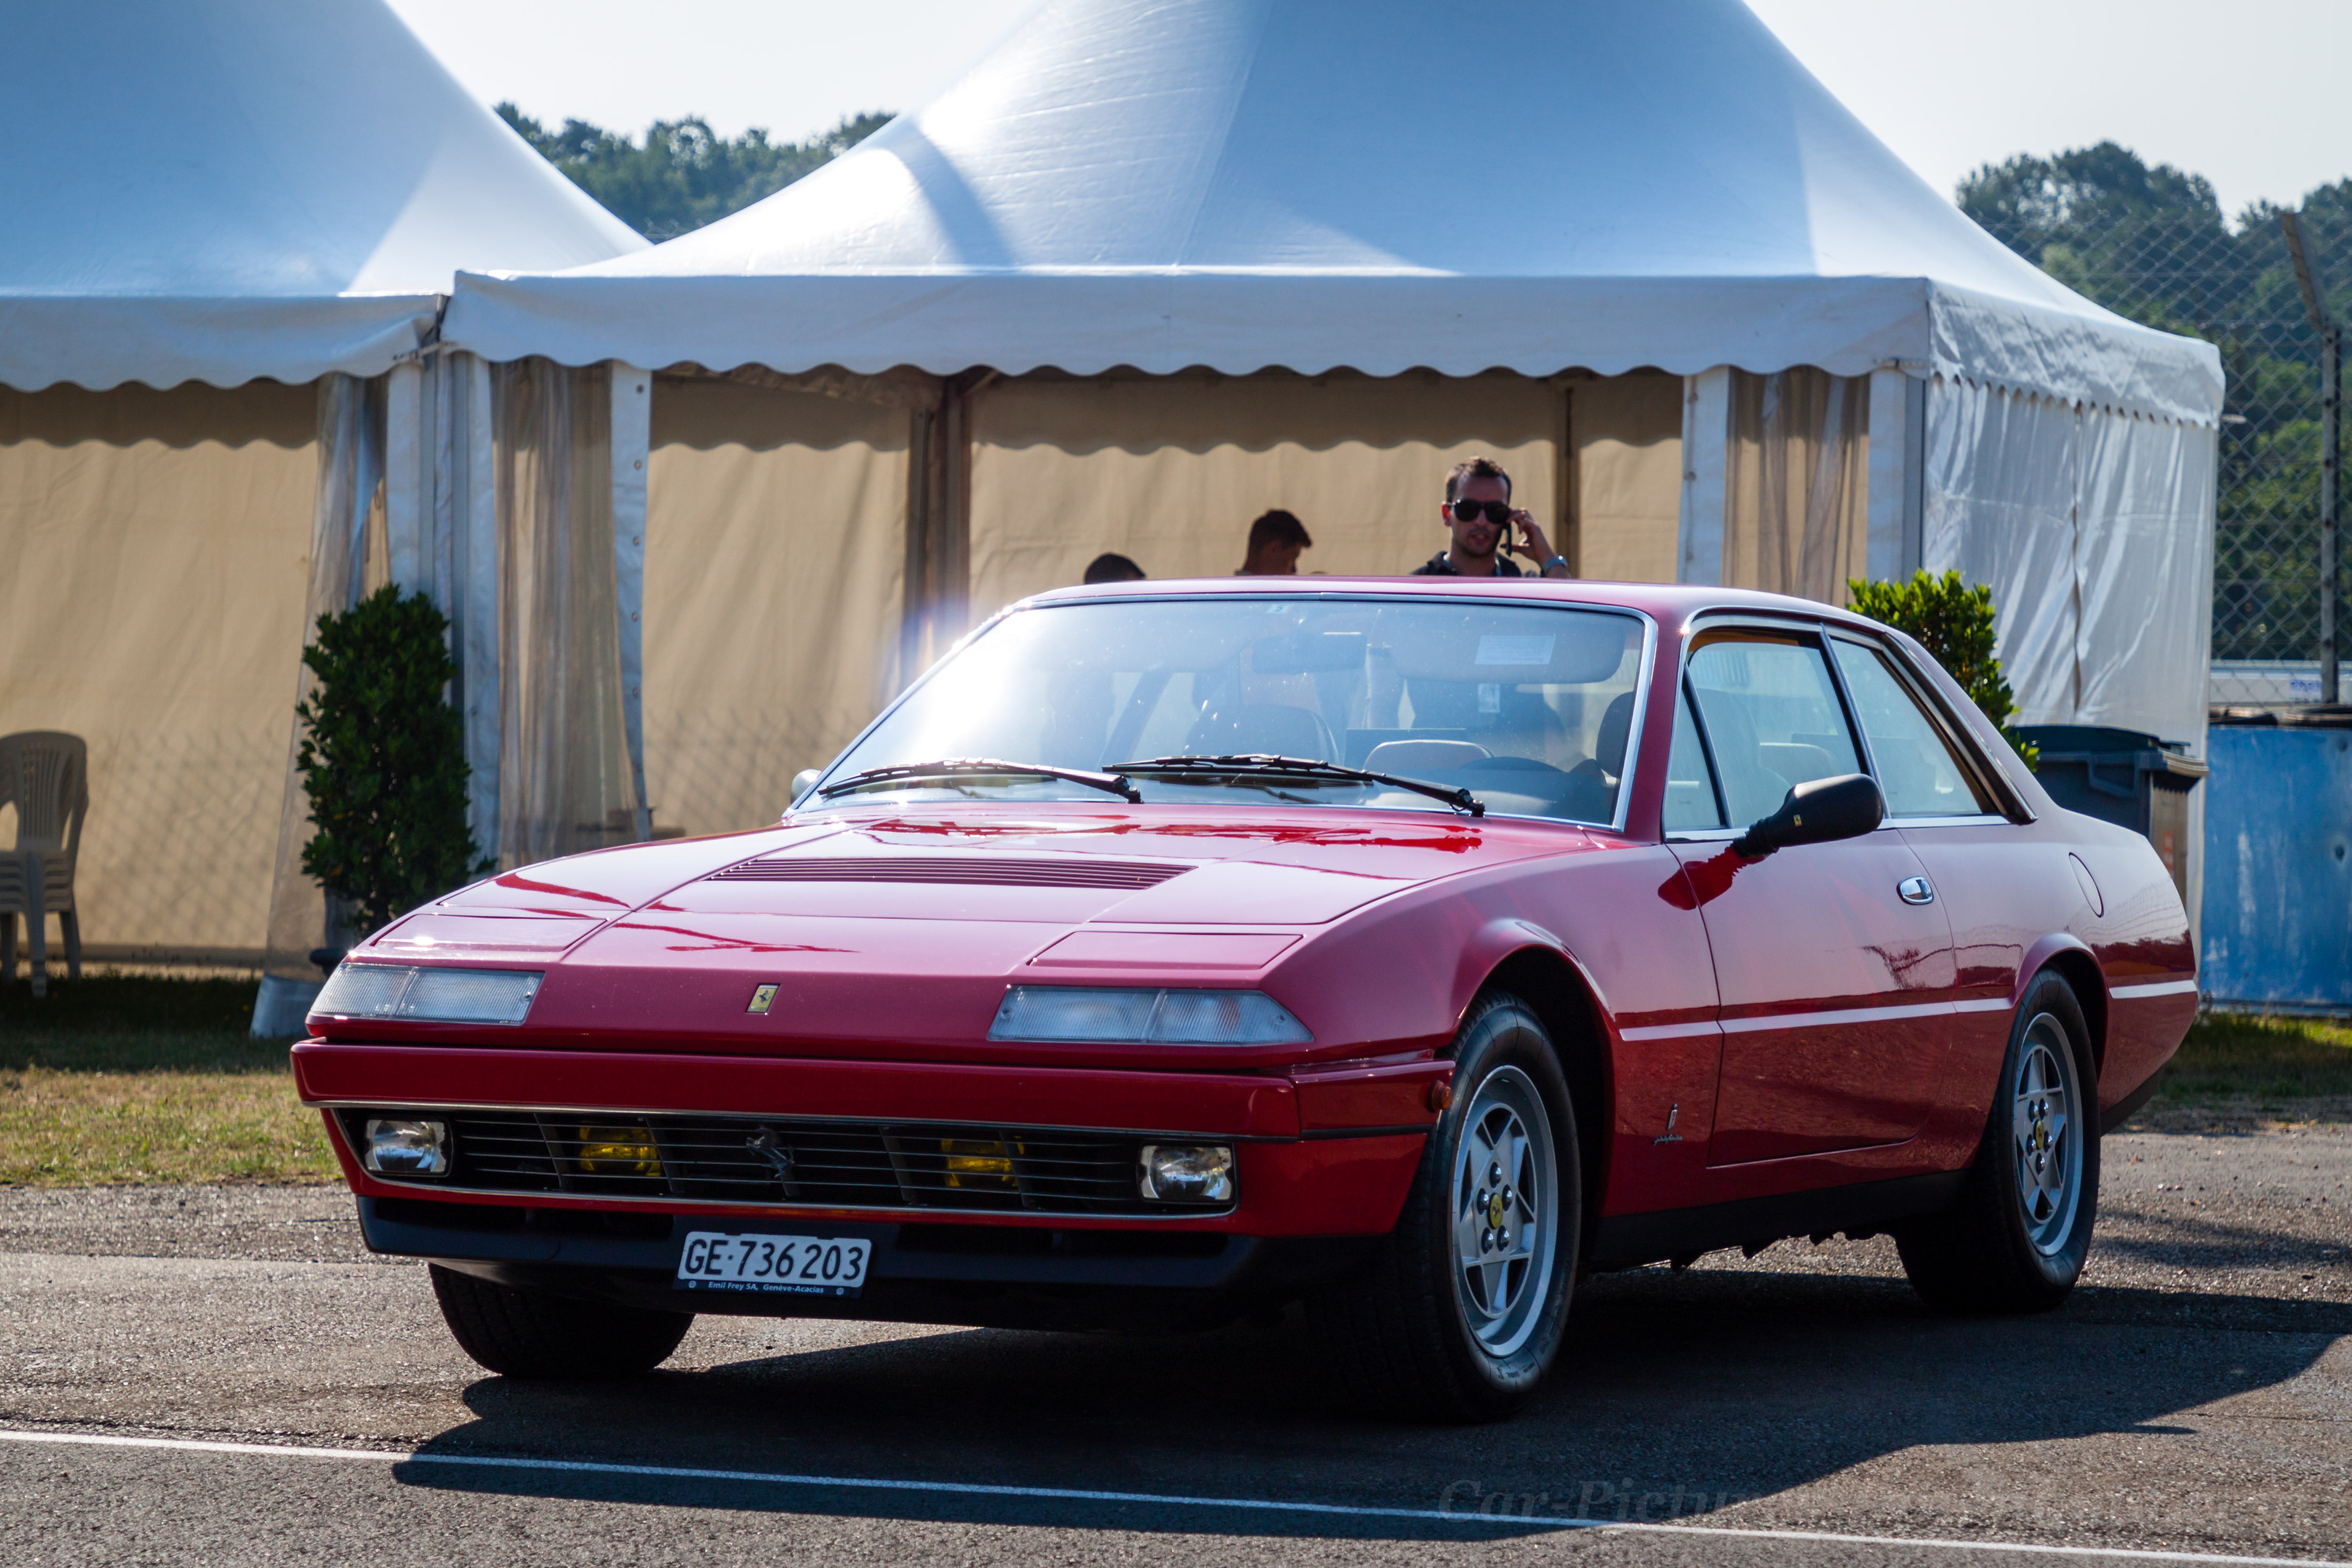 Ferrari Car Pictures 60s 70s Vintage Old Cars Hd Download Free